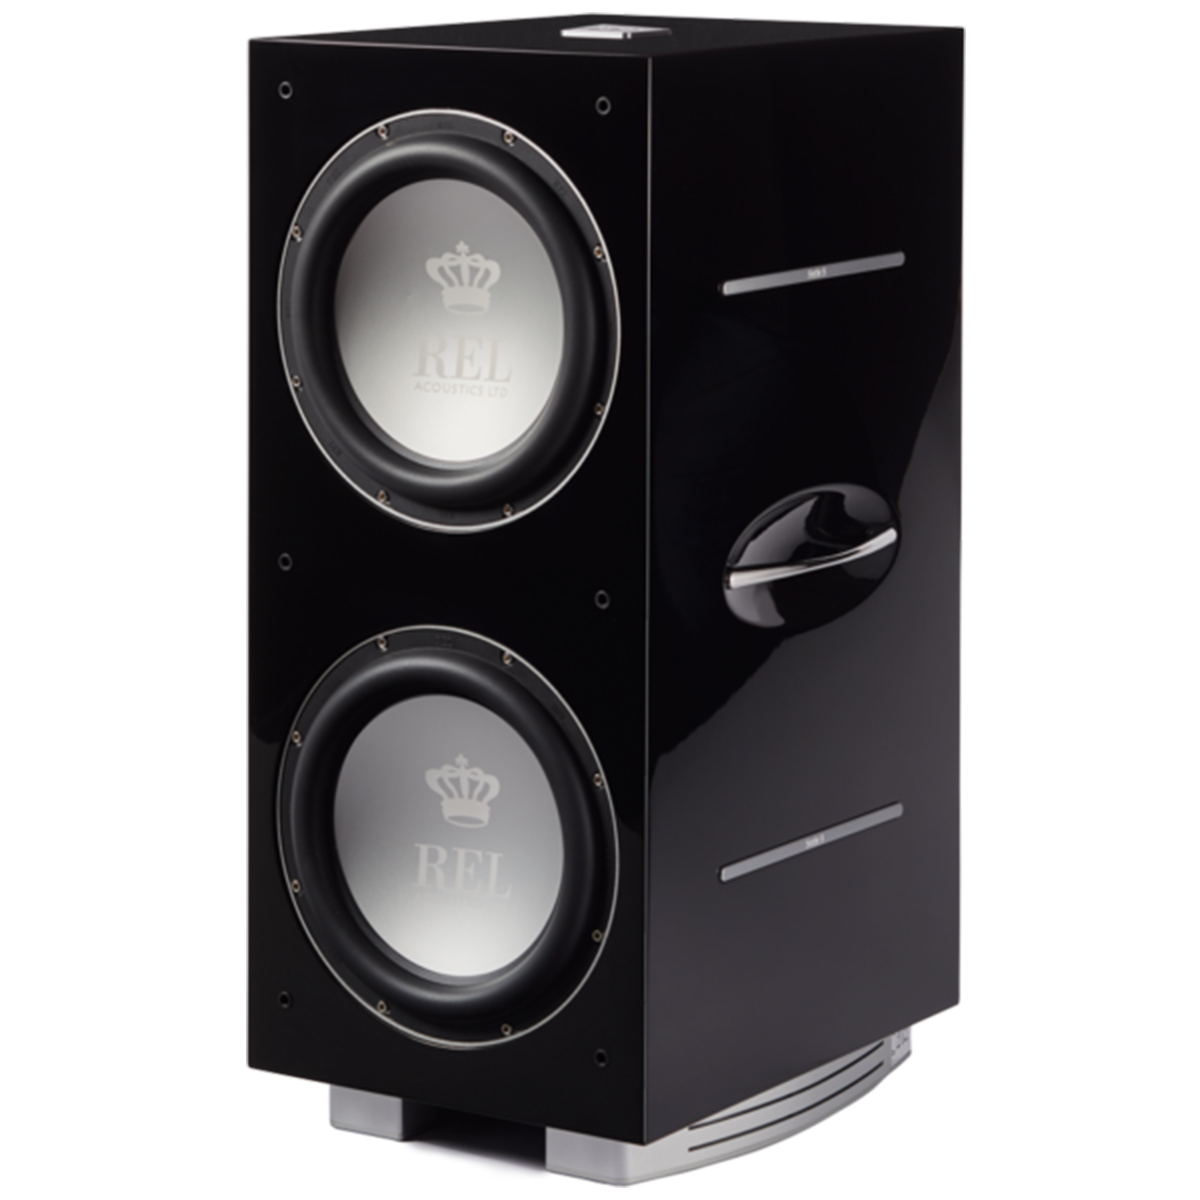 Rel 212:sx Subwoofer Side Angle Life Style Store